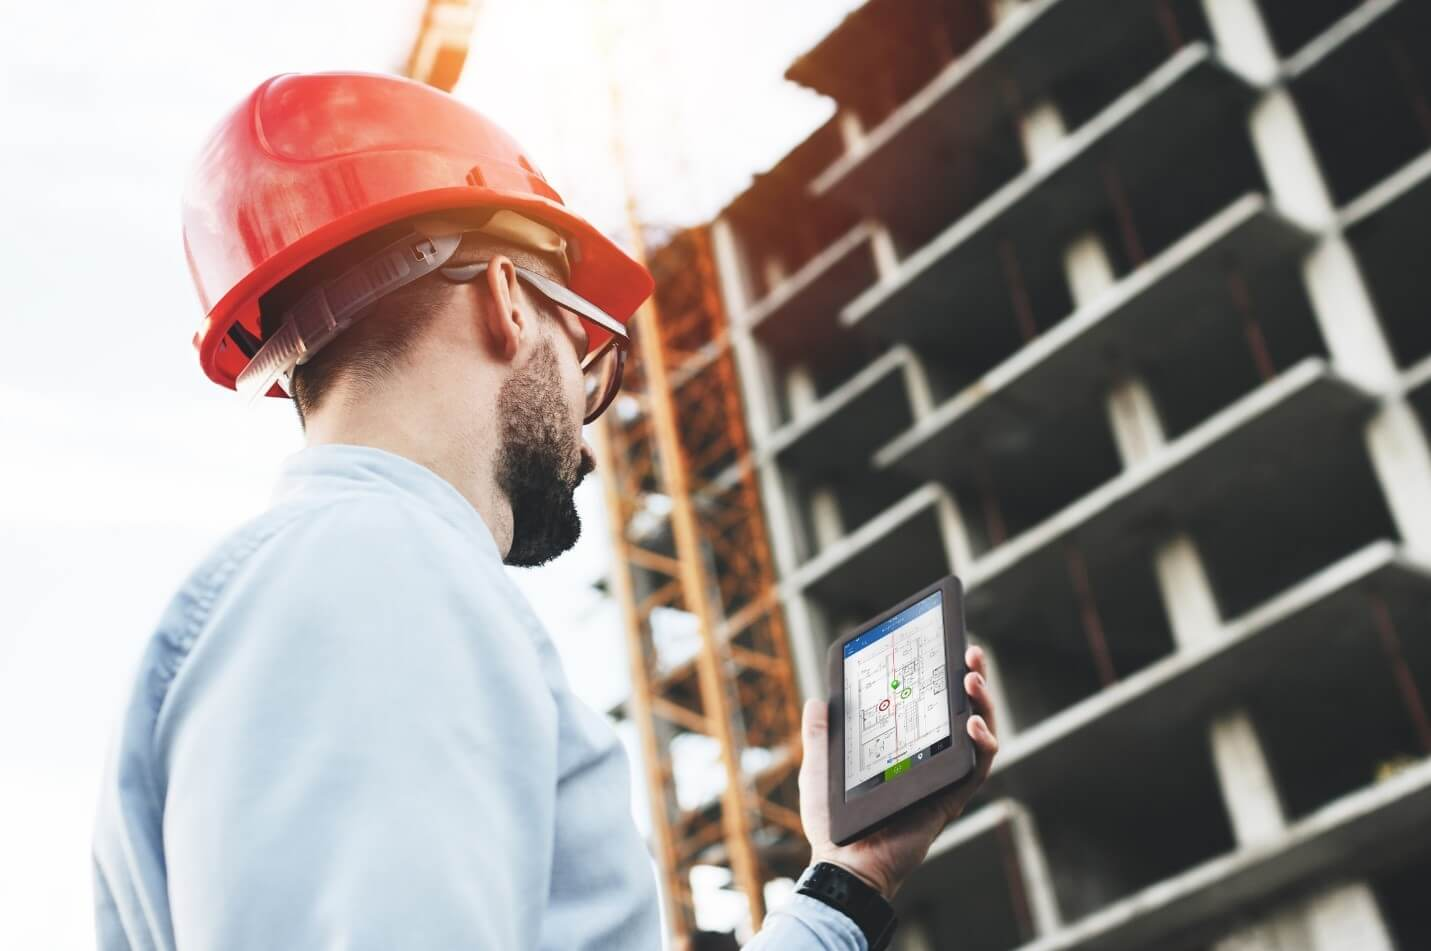 Construction Manager working on Smartphone with PlanRadar